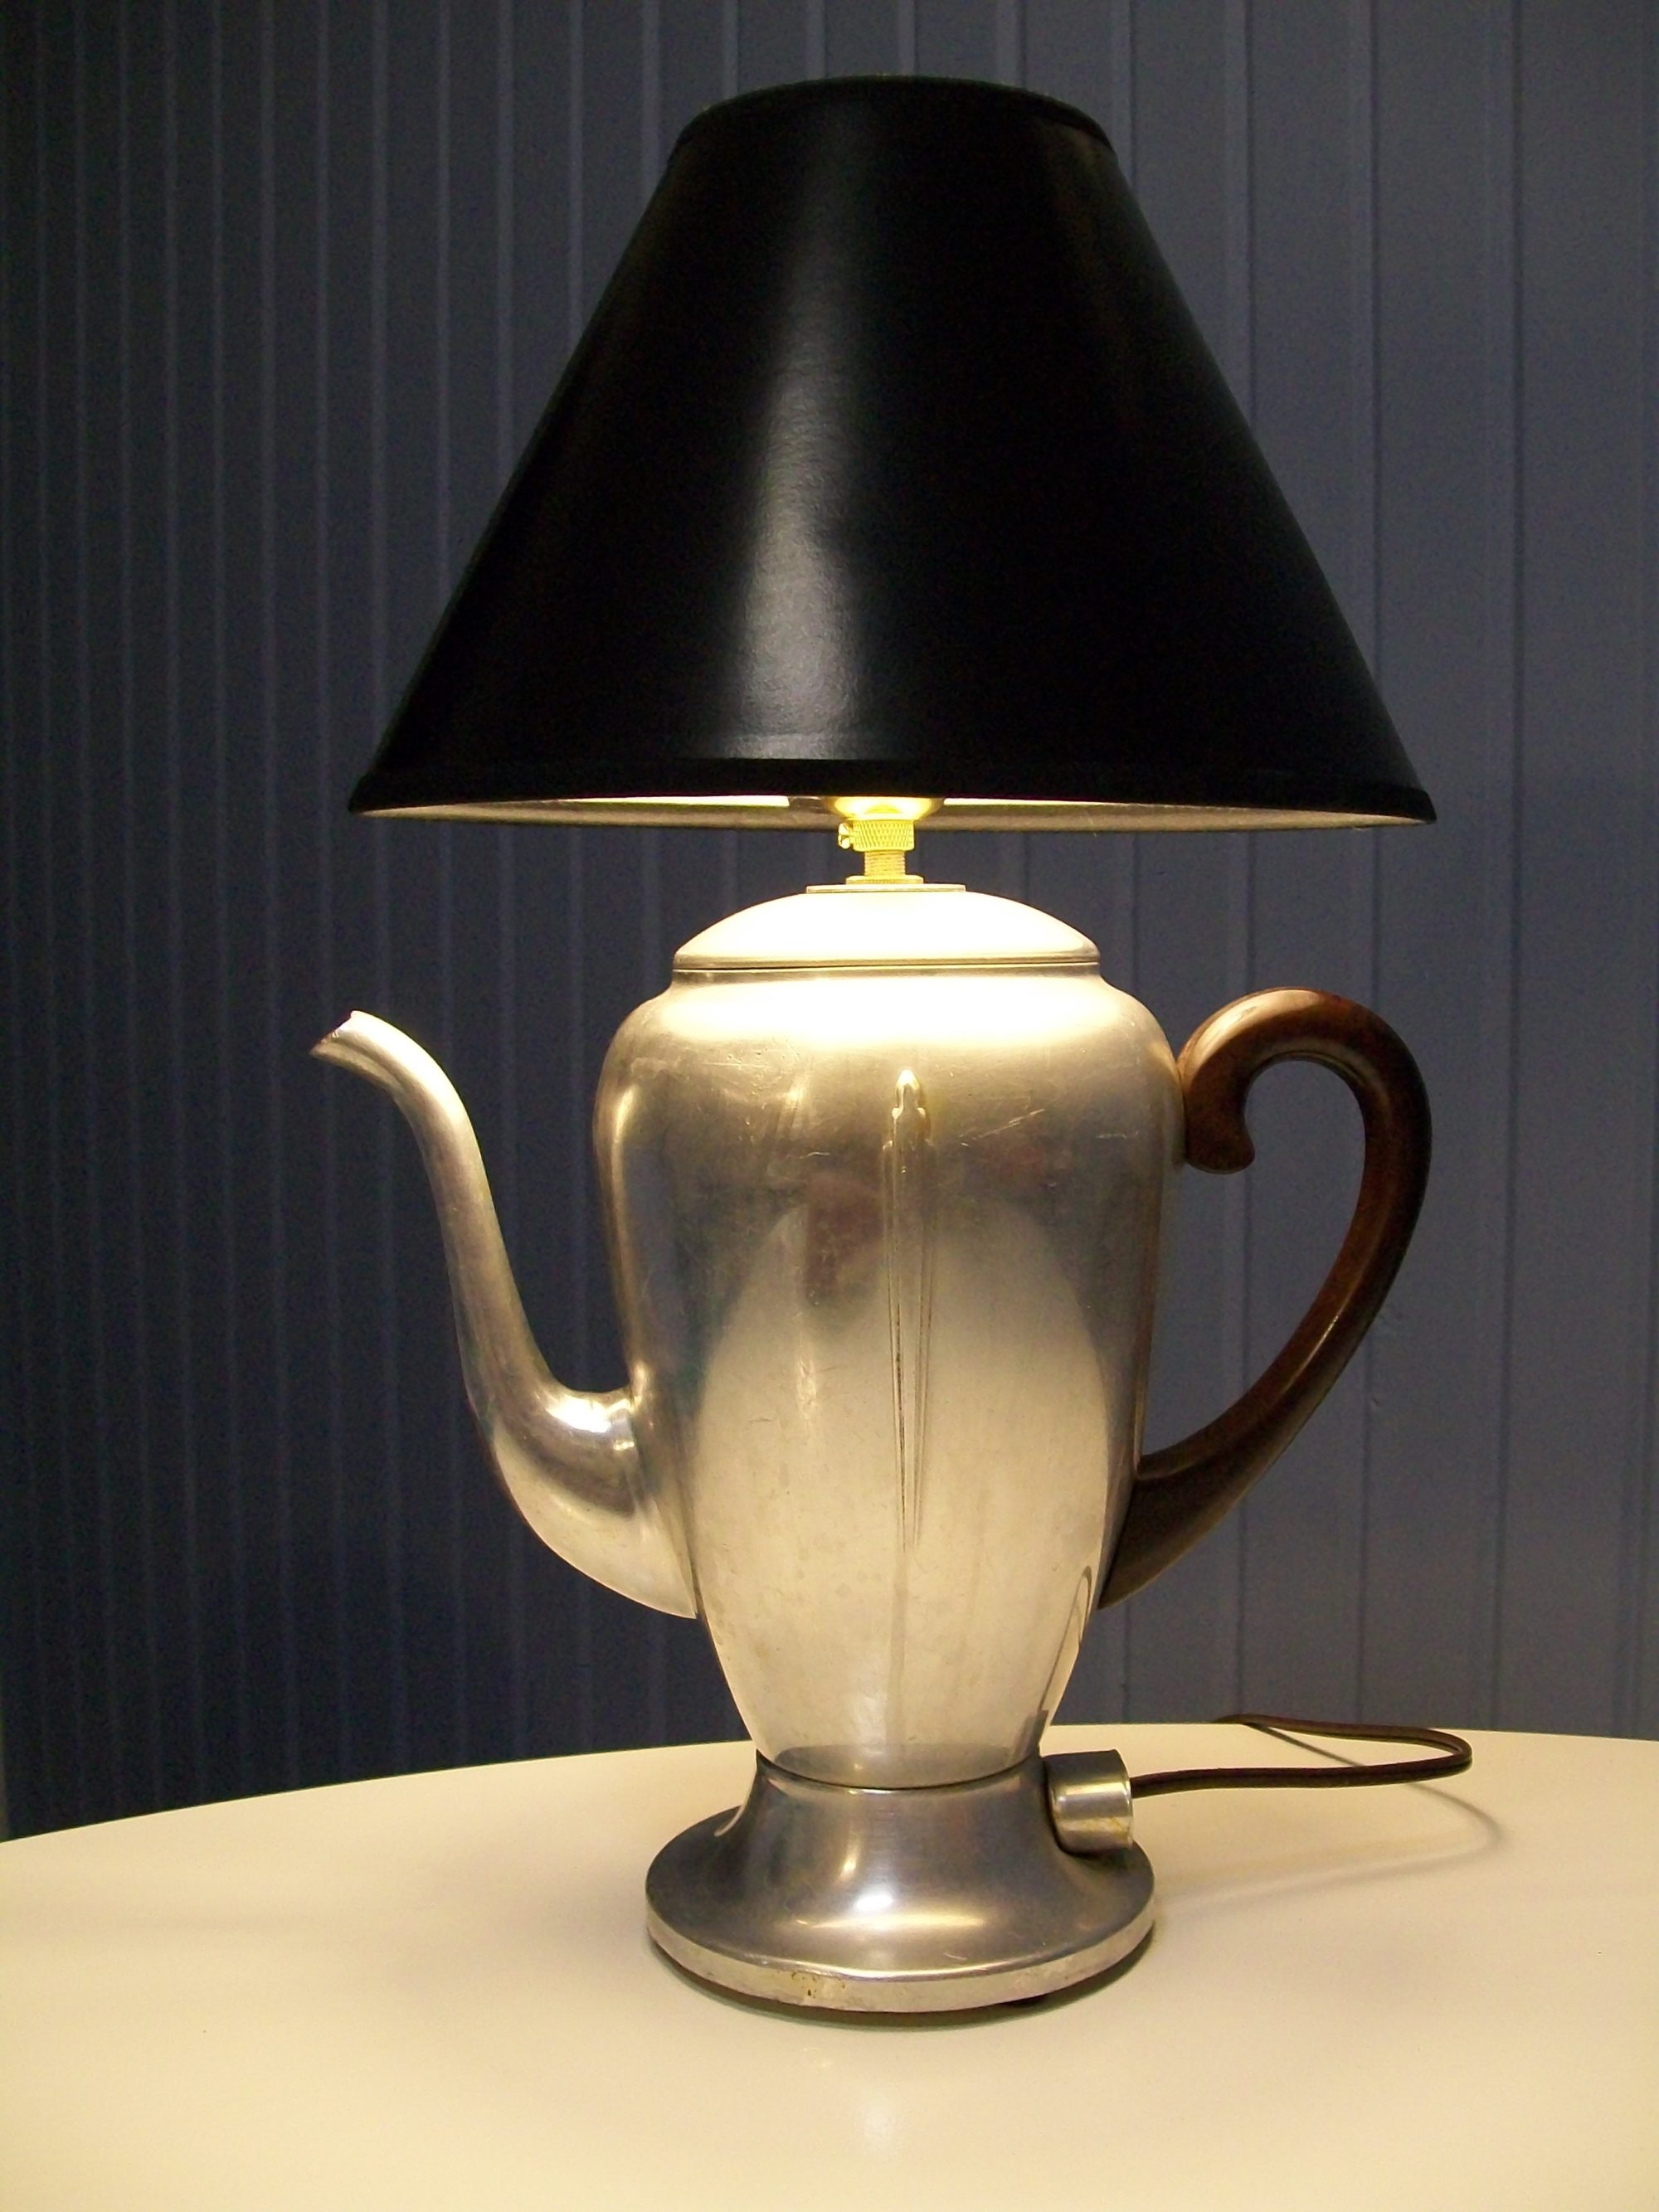 Repurposed Vintage Coffee Pot Lamp My Repurposed Life